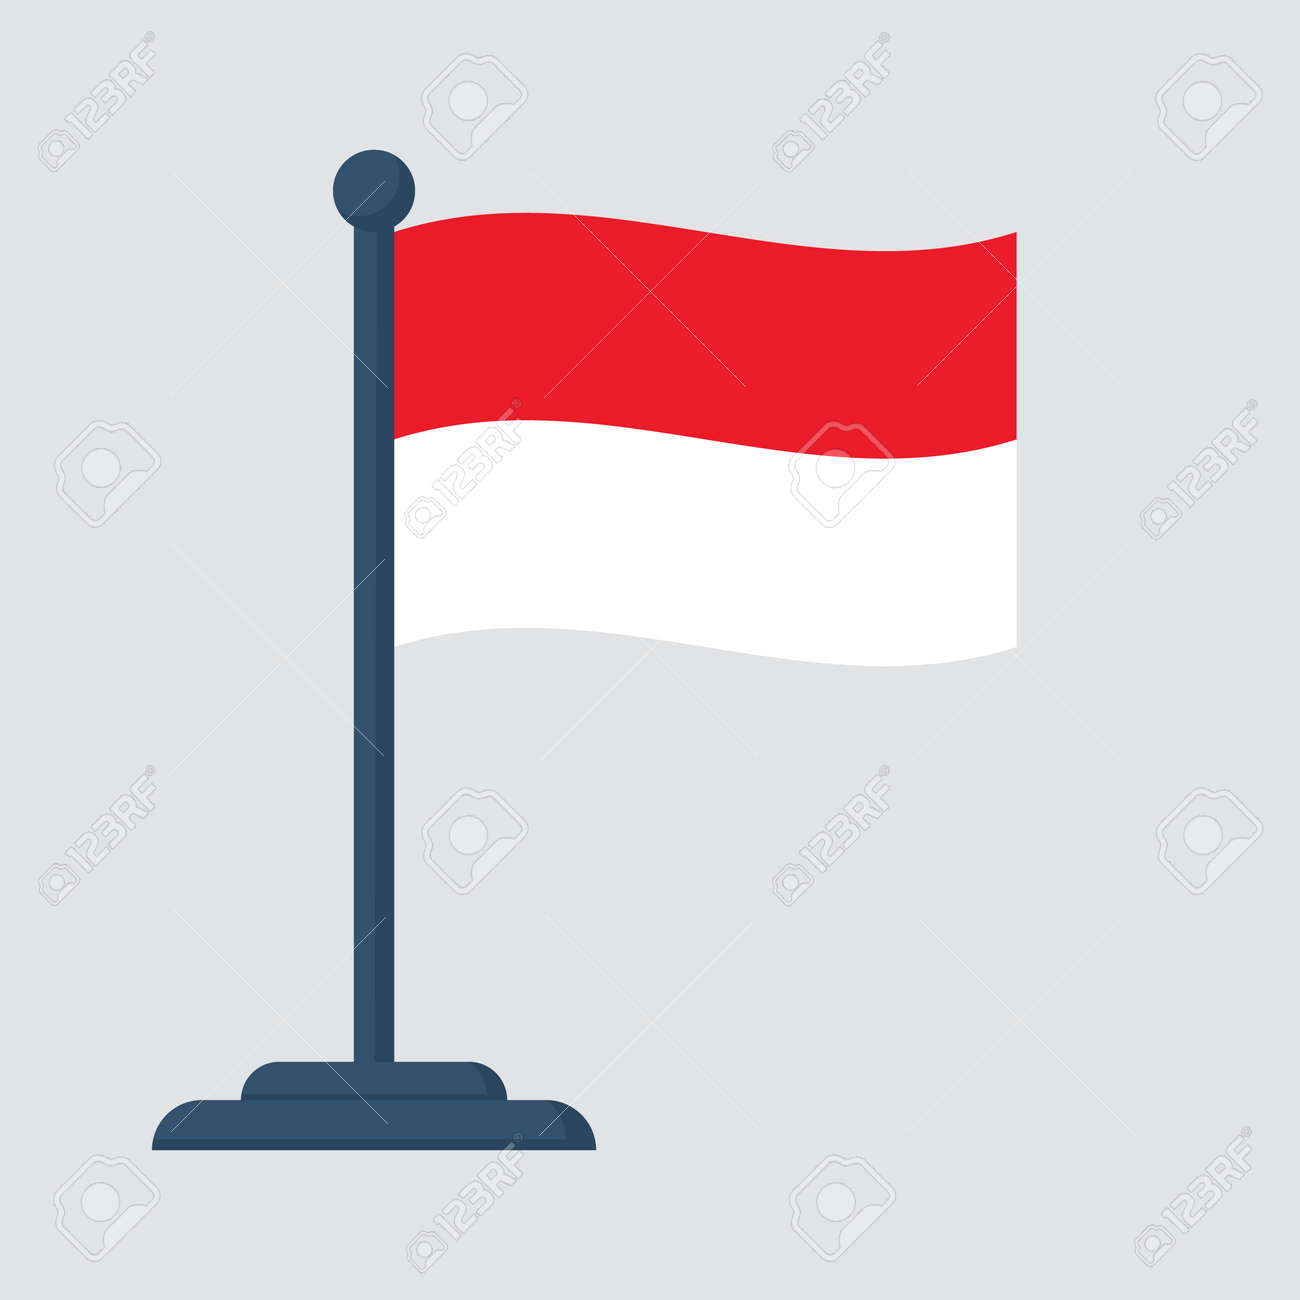 indonesia flag isolated on white background royalty free cliparts vectors and stock illustration image 81645660 indonesia flag isolated on white background